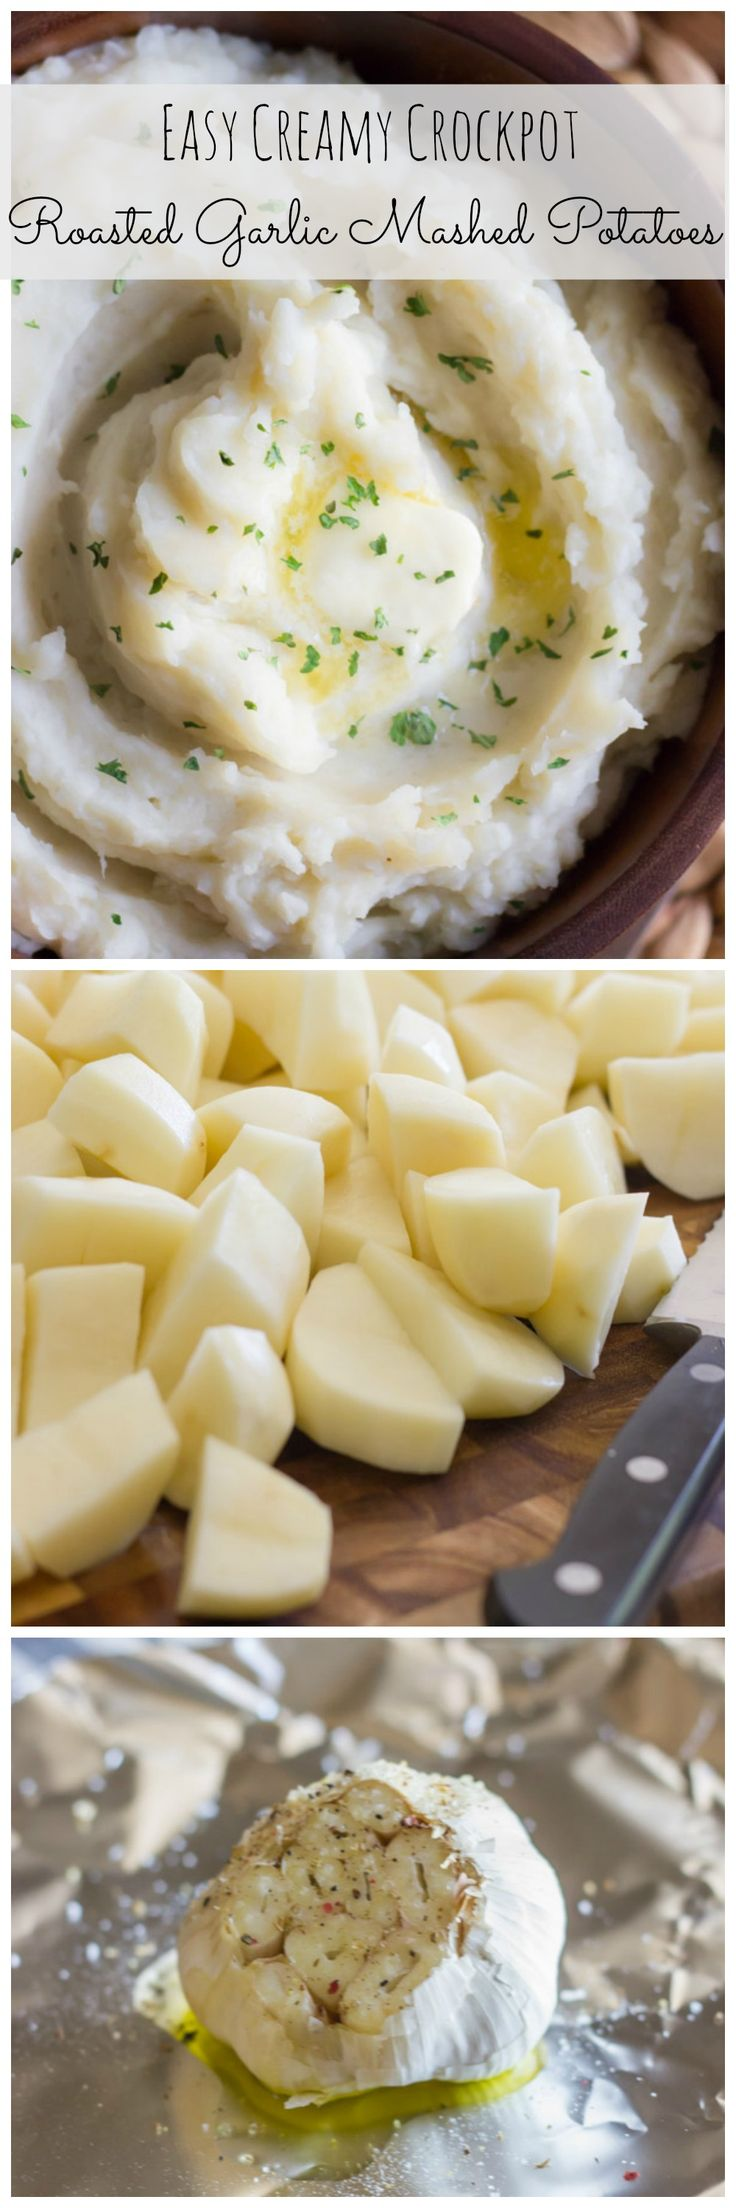 You can roast your garlic and make the creamiest mashed potatoes all in the crockpot!